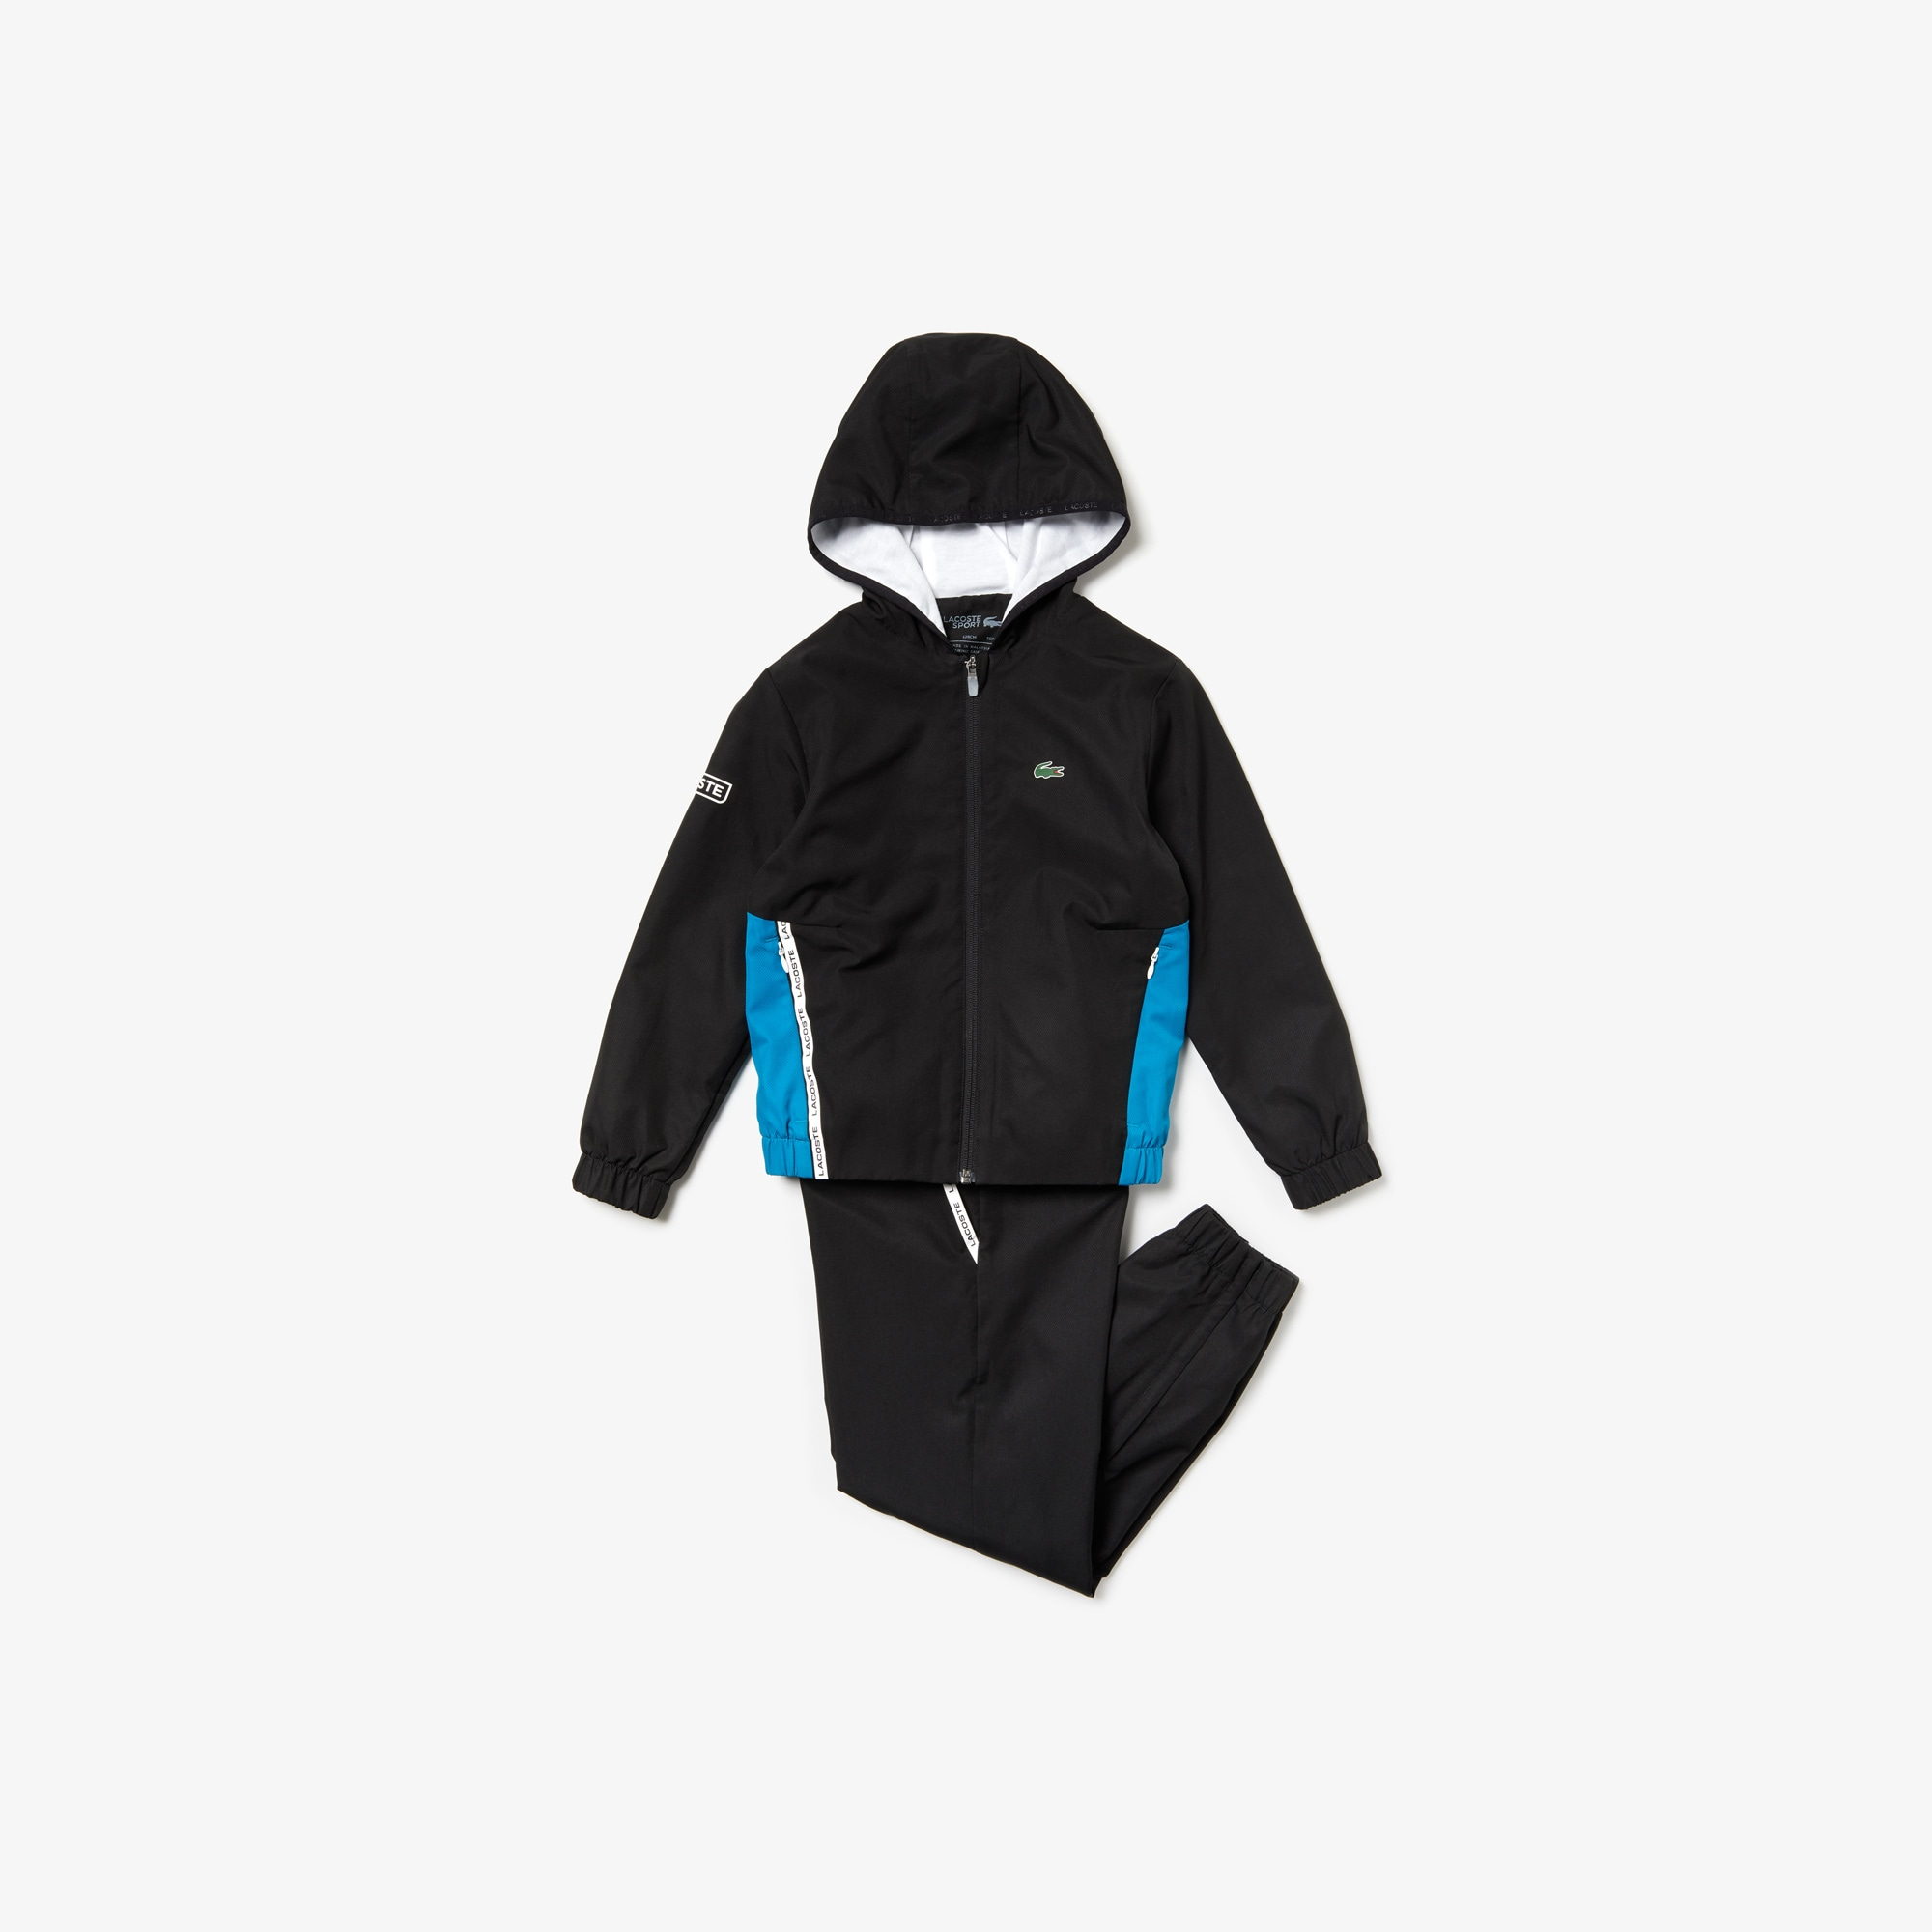 라코스테 Lacoste Boys SPORT Two-Tone Tennis Track Suit,Black / Blue / White - 4XU